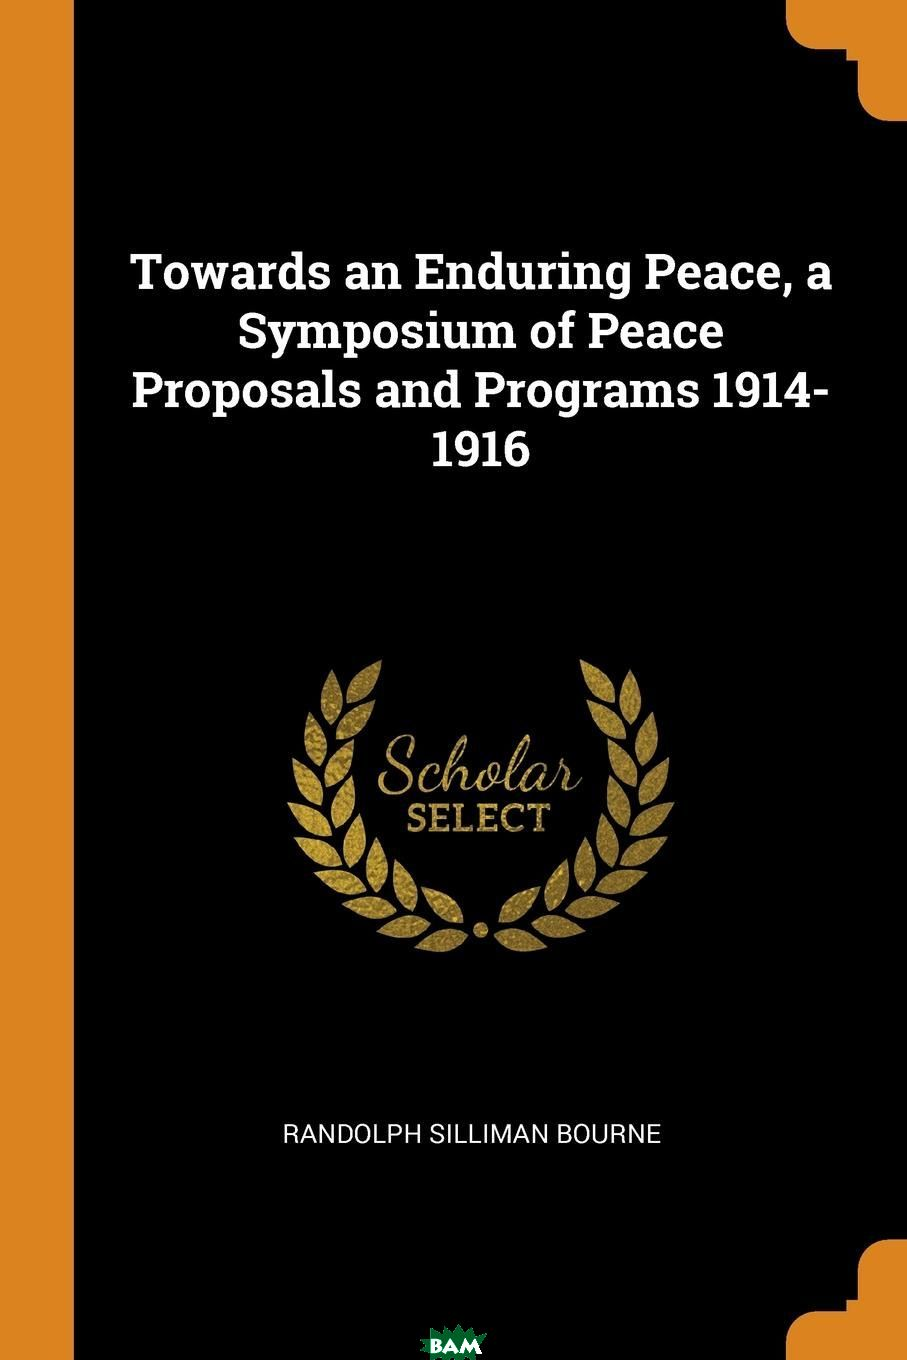 Купить Towards an Enduring Peace, a Symposium of Peace Proposals and Programs 1914-1916, Randolph Silliman Bourne, 9780353079052